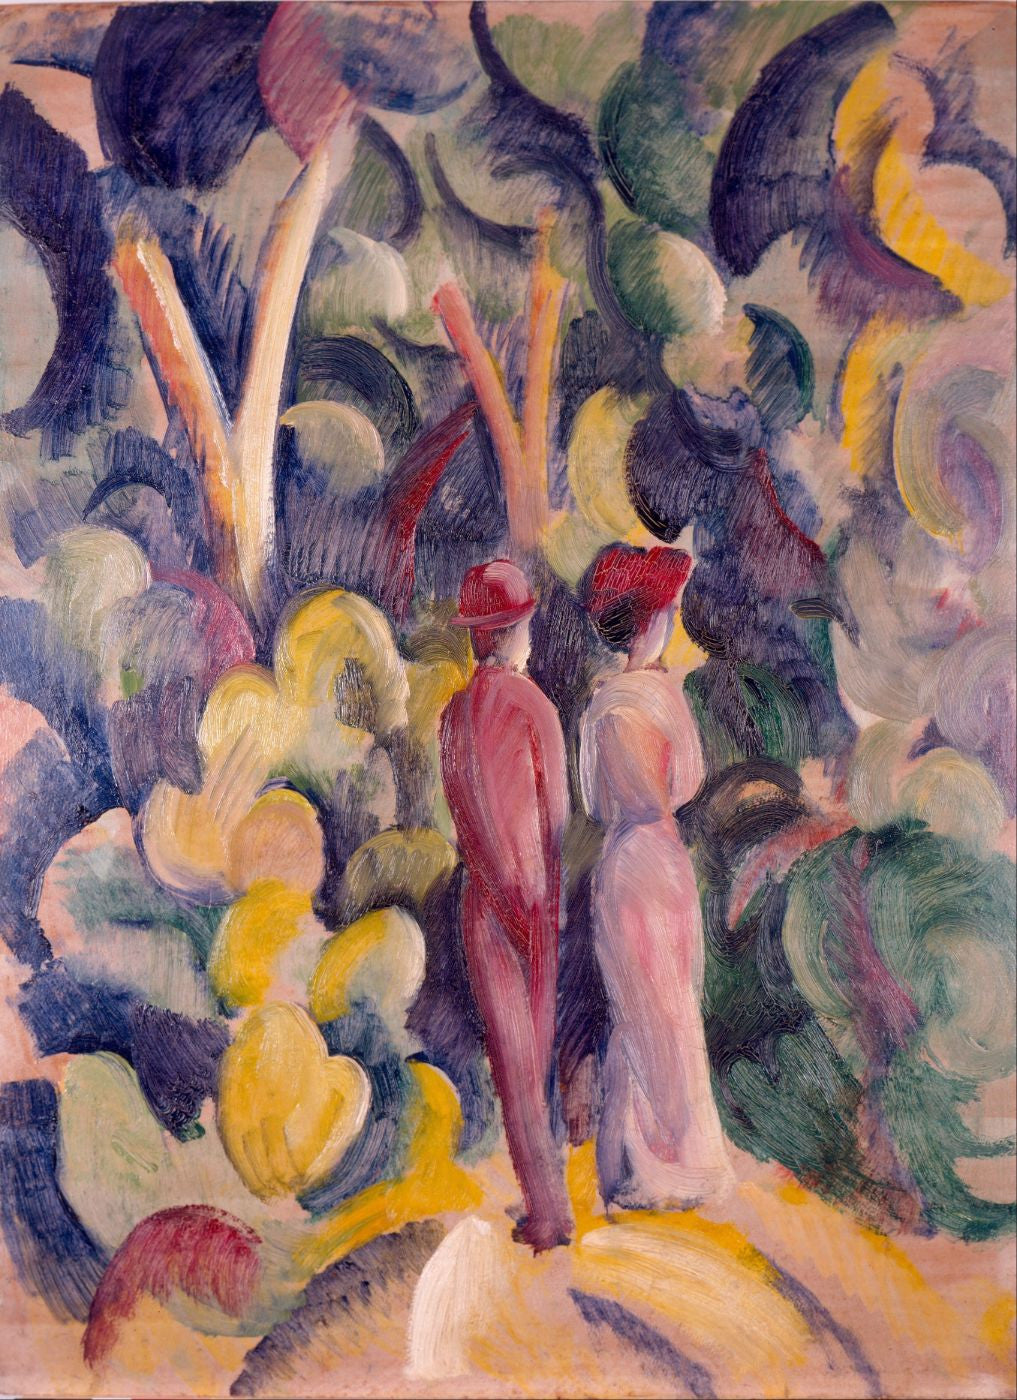 August Macke Paintings | Buy Posters, Frames, Canvas, Digital Art & Large Size Prints Of The Famous Modern Master's Artworks